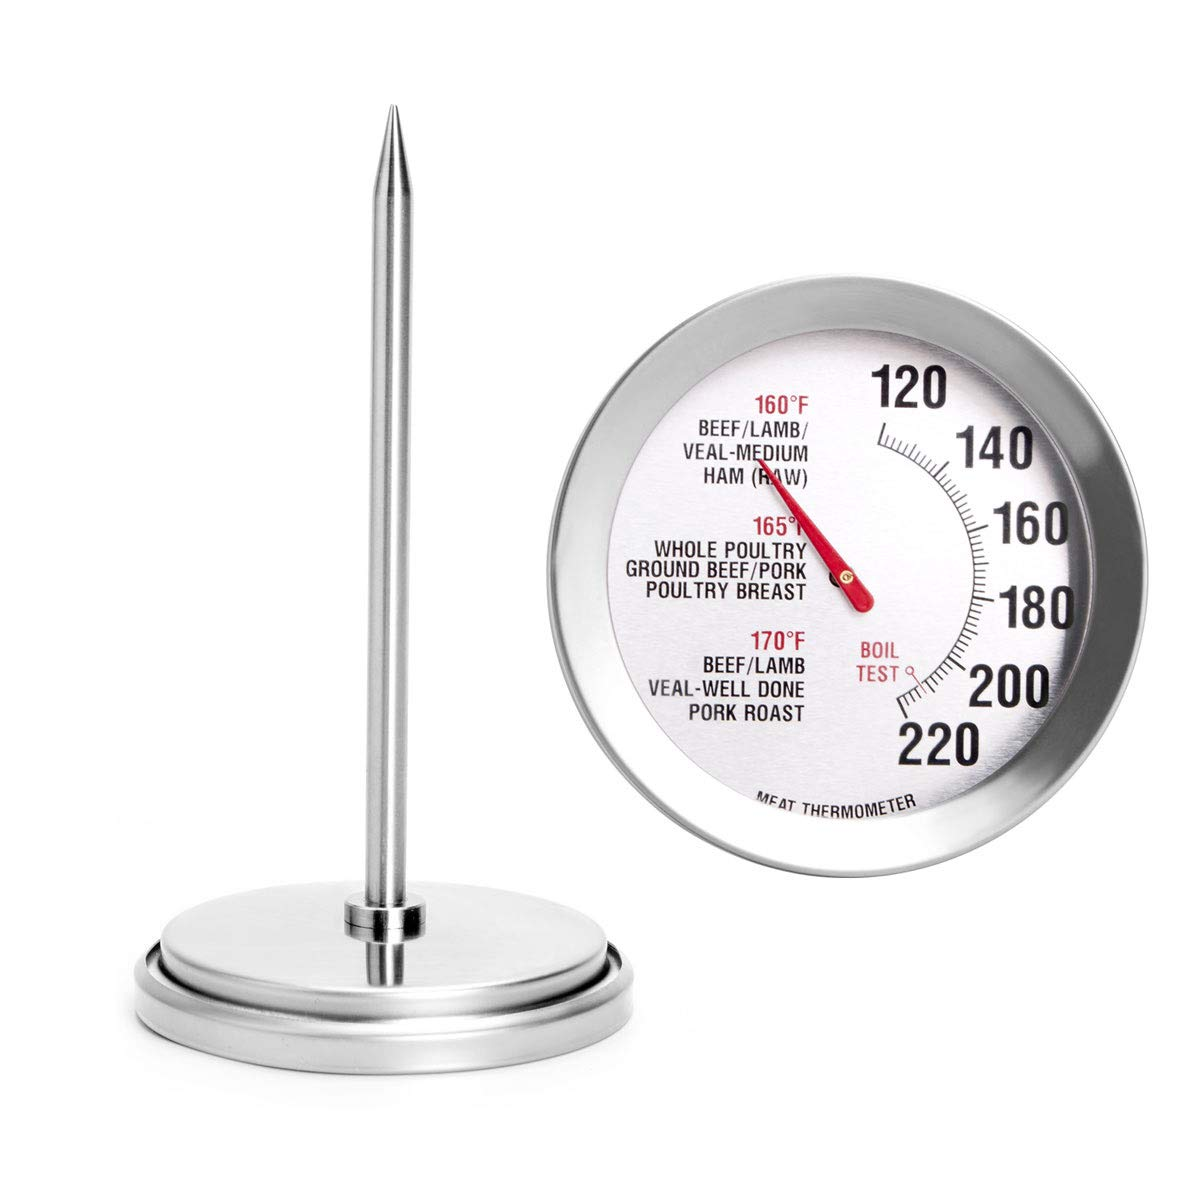 Meat Thermometer Extra Large Dial 2.8-Inch Meat & Poultry Thermometer Stainless Steel Safe Waterproof Classic Design BBQ Poultry Probe Cooking Meat Thermometer for Household Cooking Turkey Pork Beef…